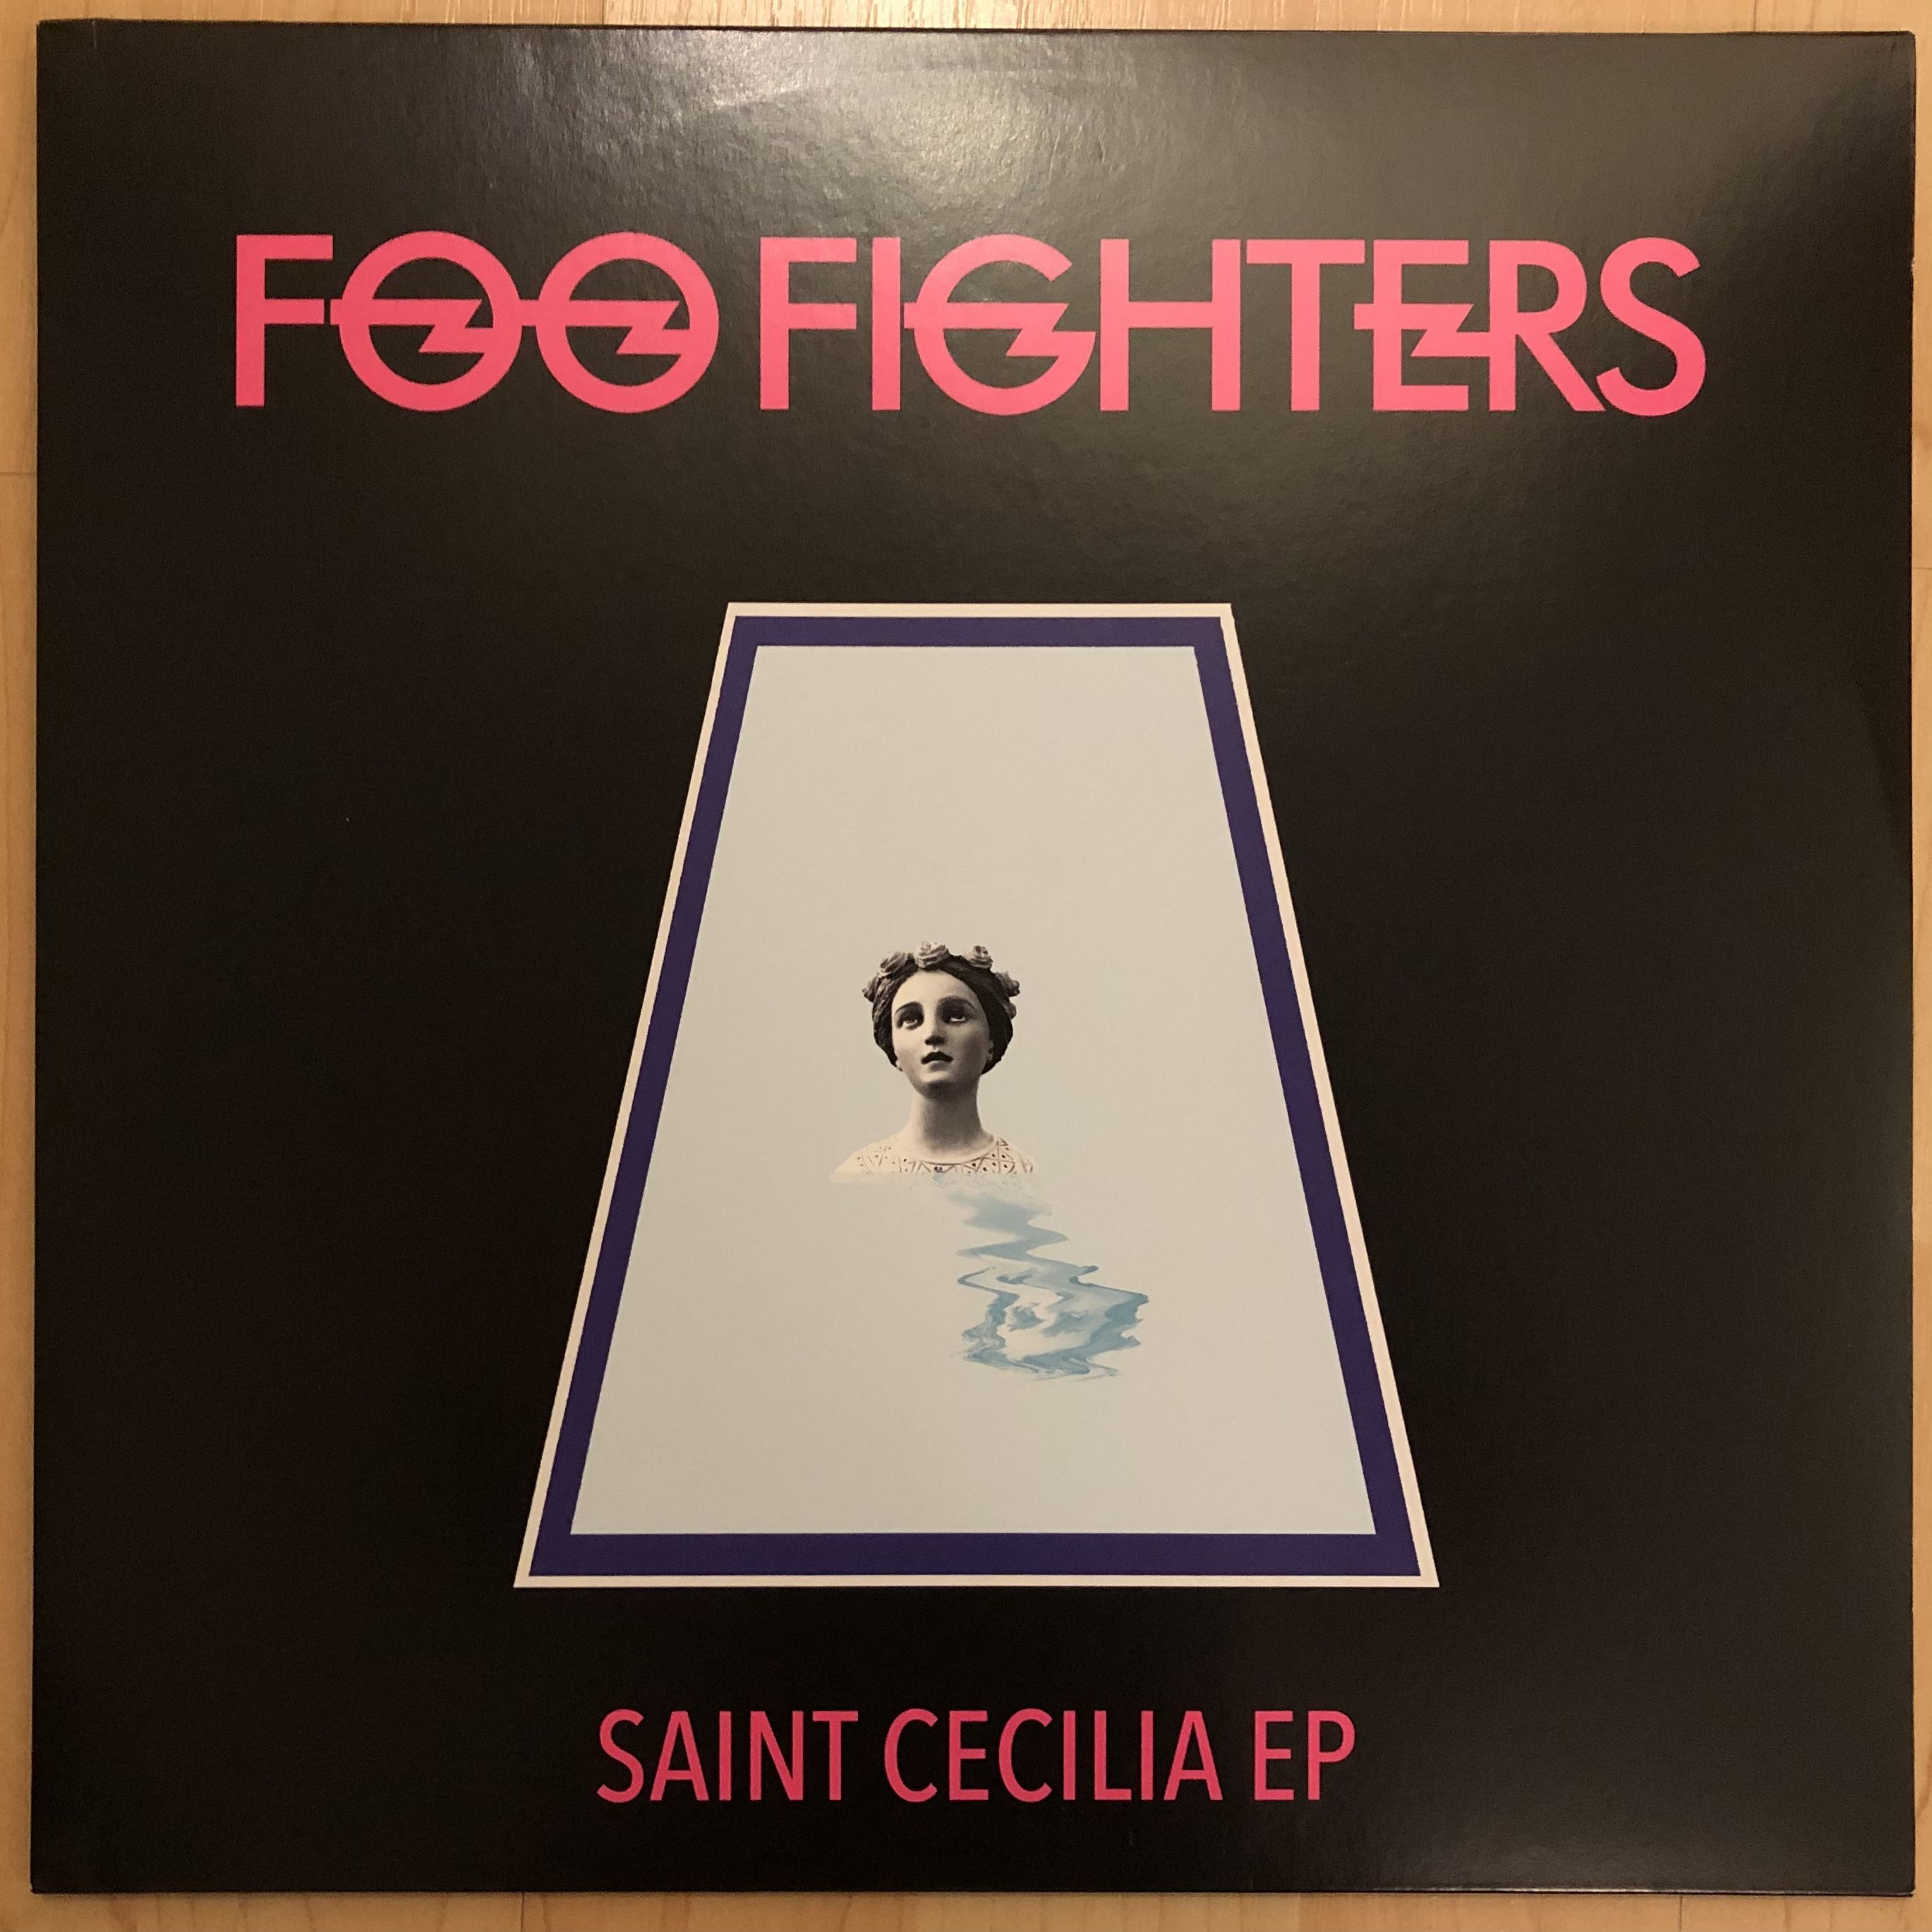 Foo Fighters Saint Cecilia ep LP undefined